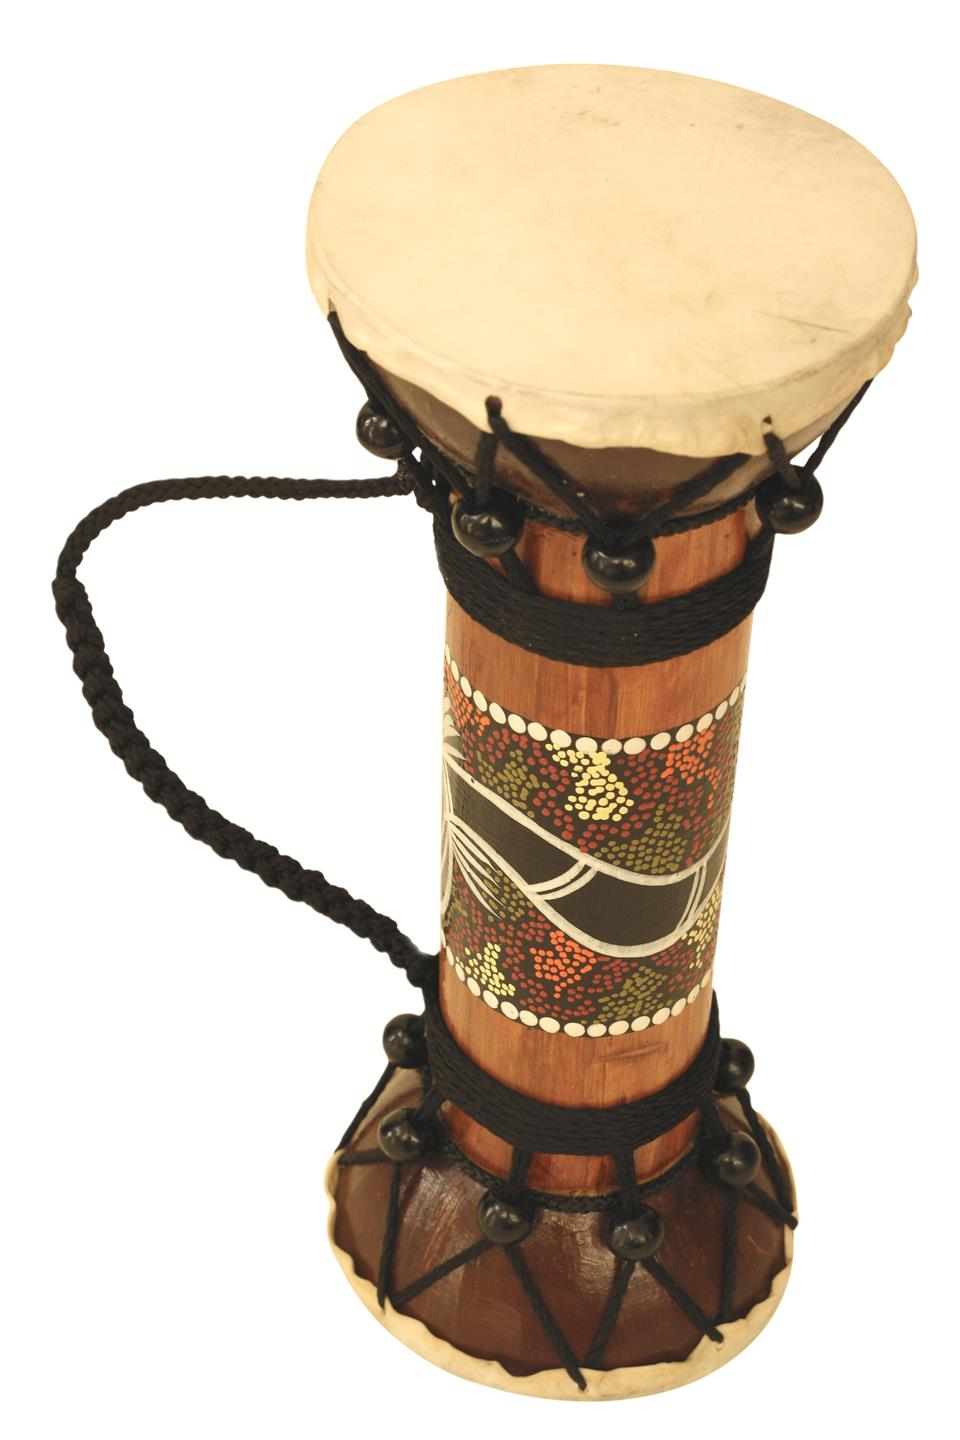 11.5″ Wooden Hand Carved Double Sided Drum Djembe African Wood Decor Kids Gift